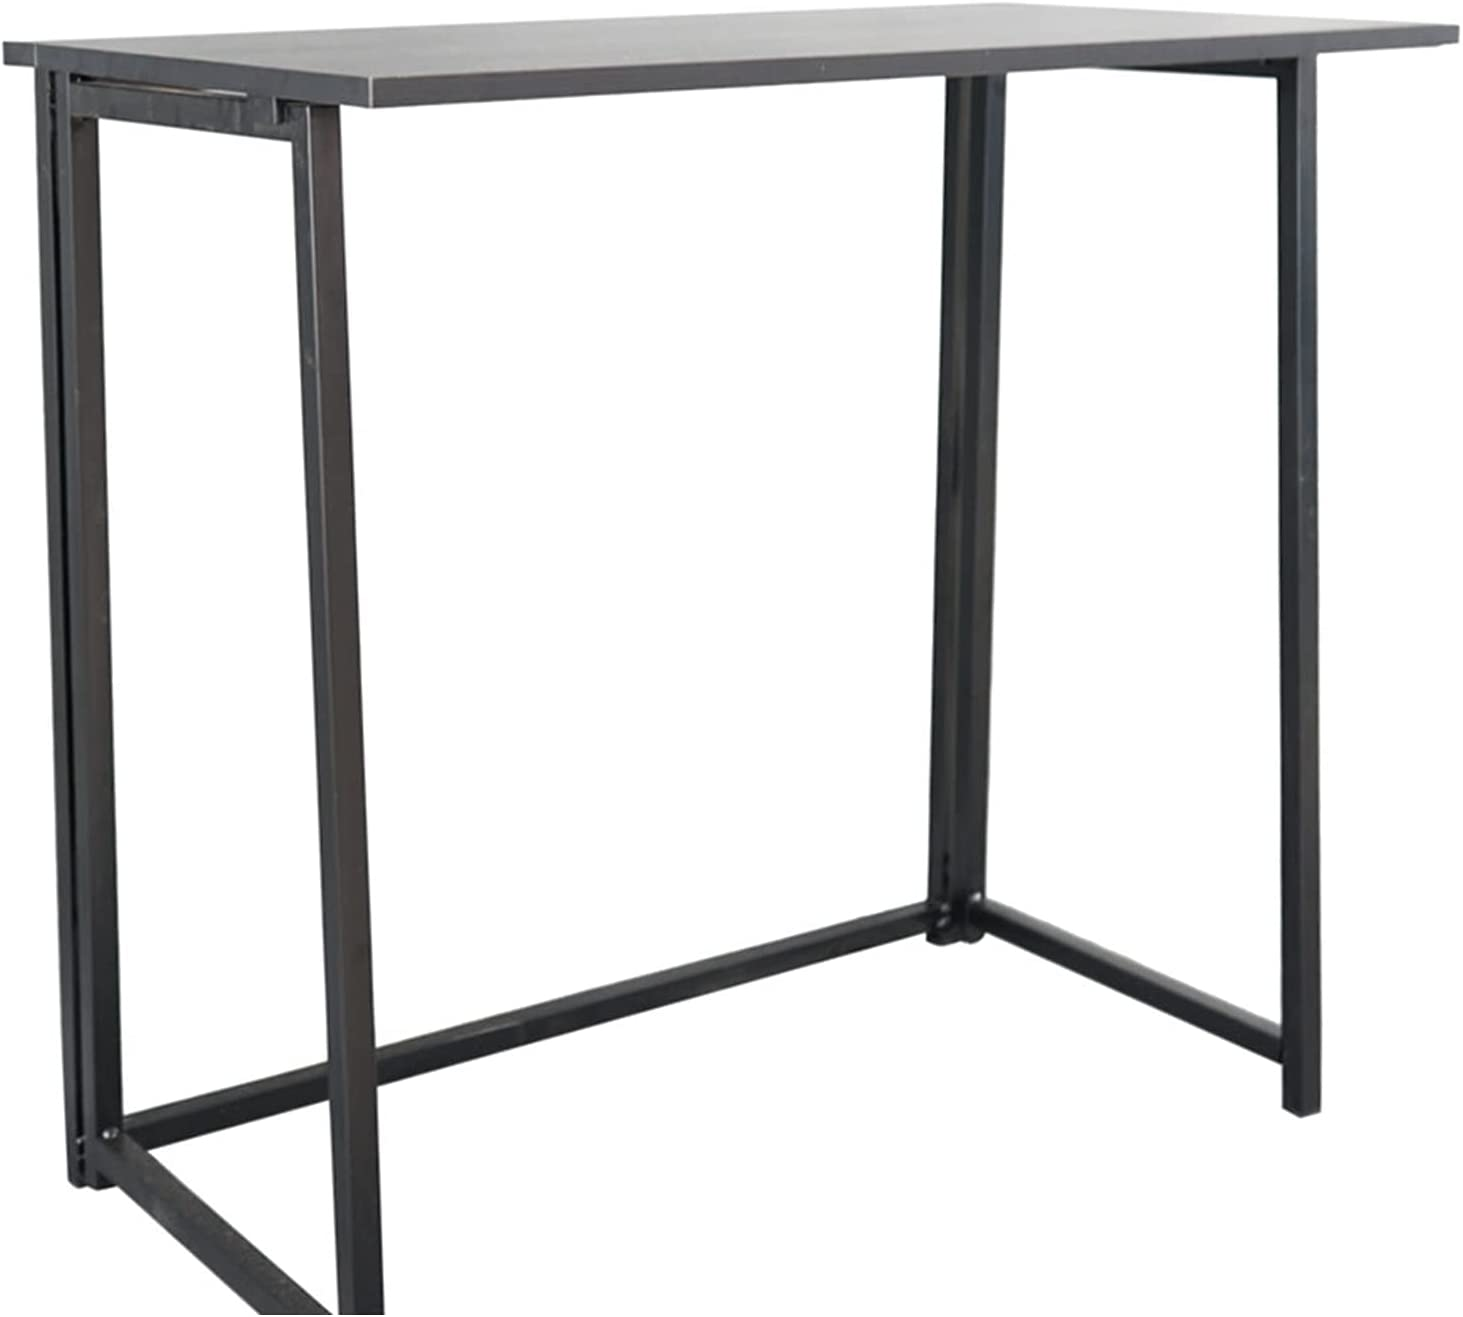 Simple Collapsible MDF Laptop Table Desk Study Max 49% Purchase OFF Station; Working